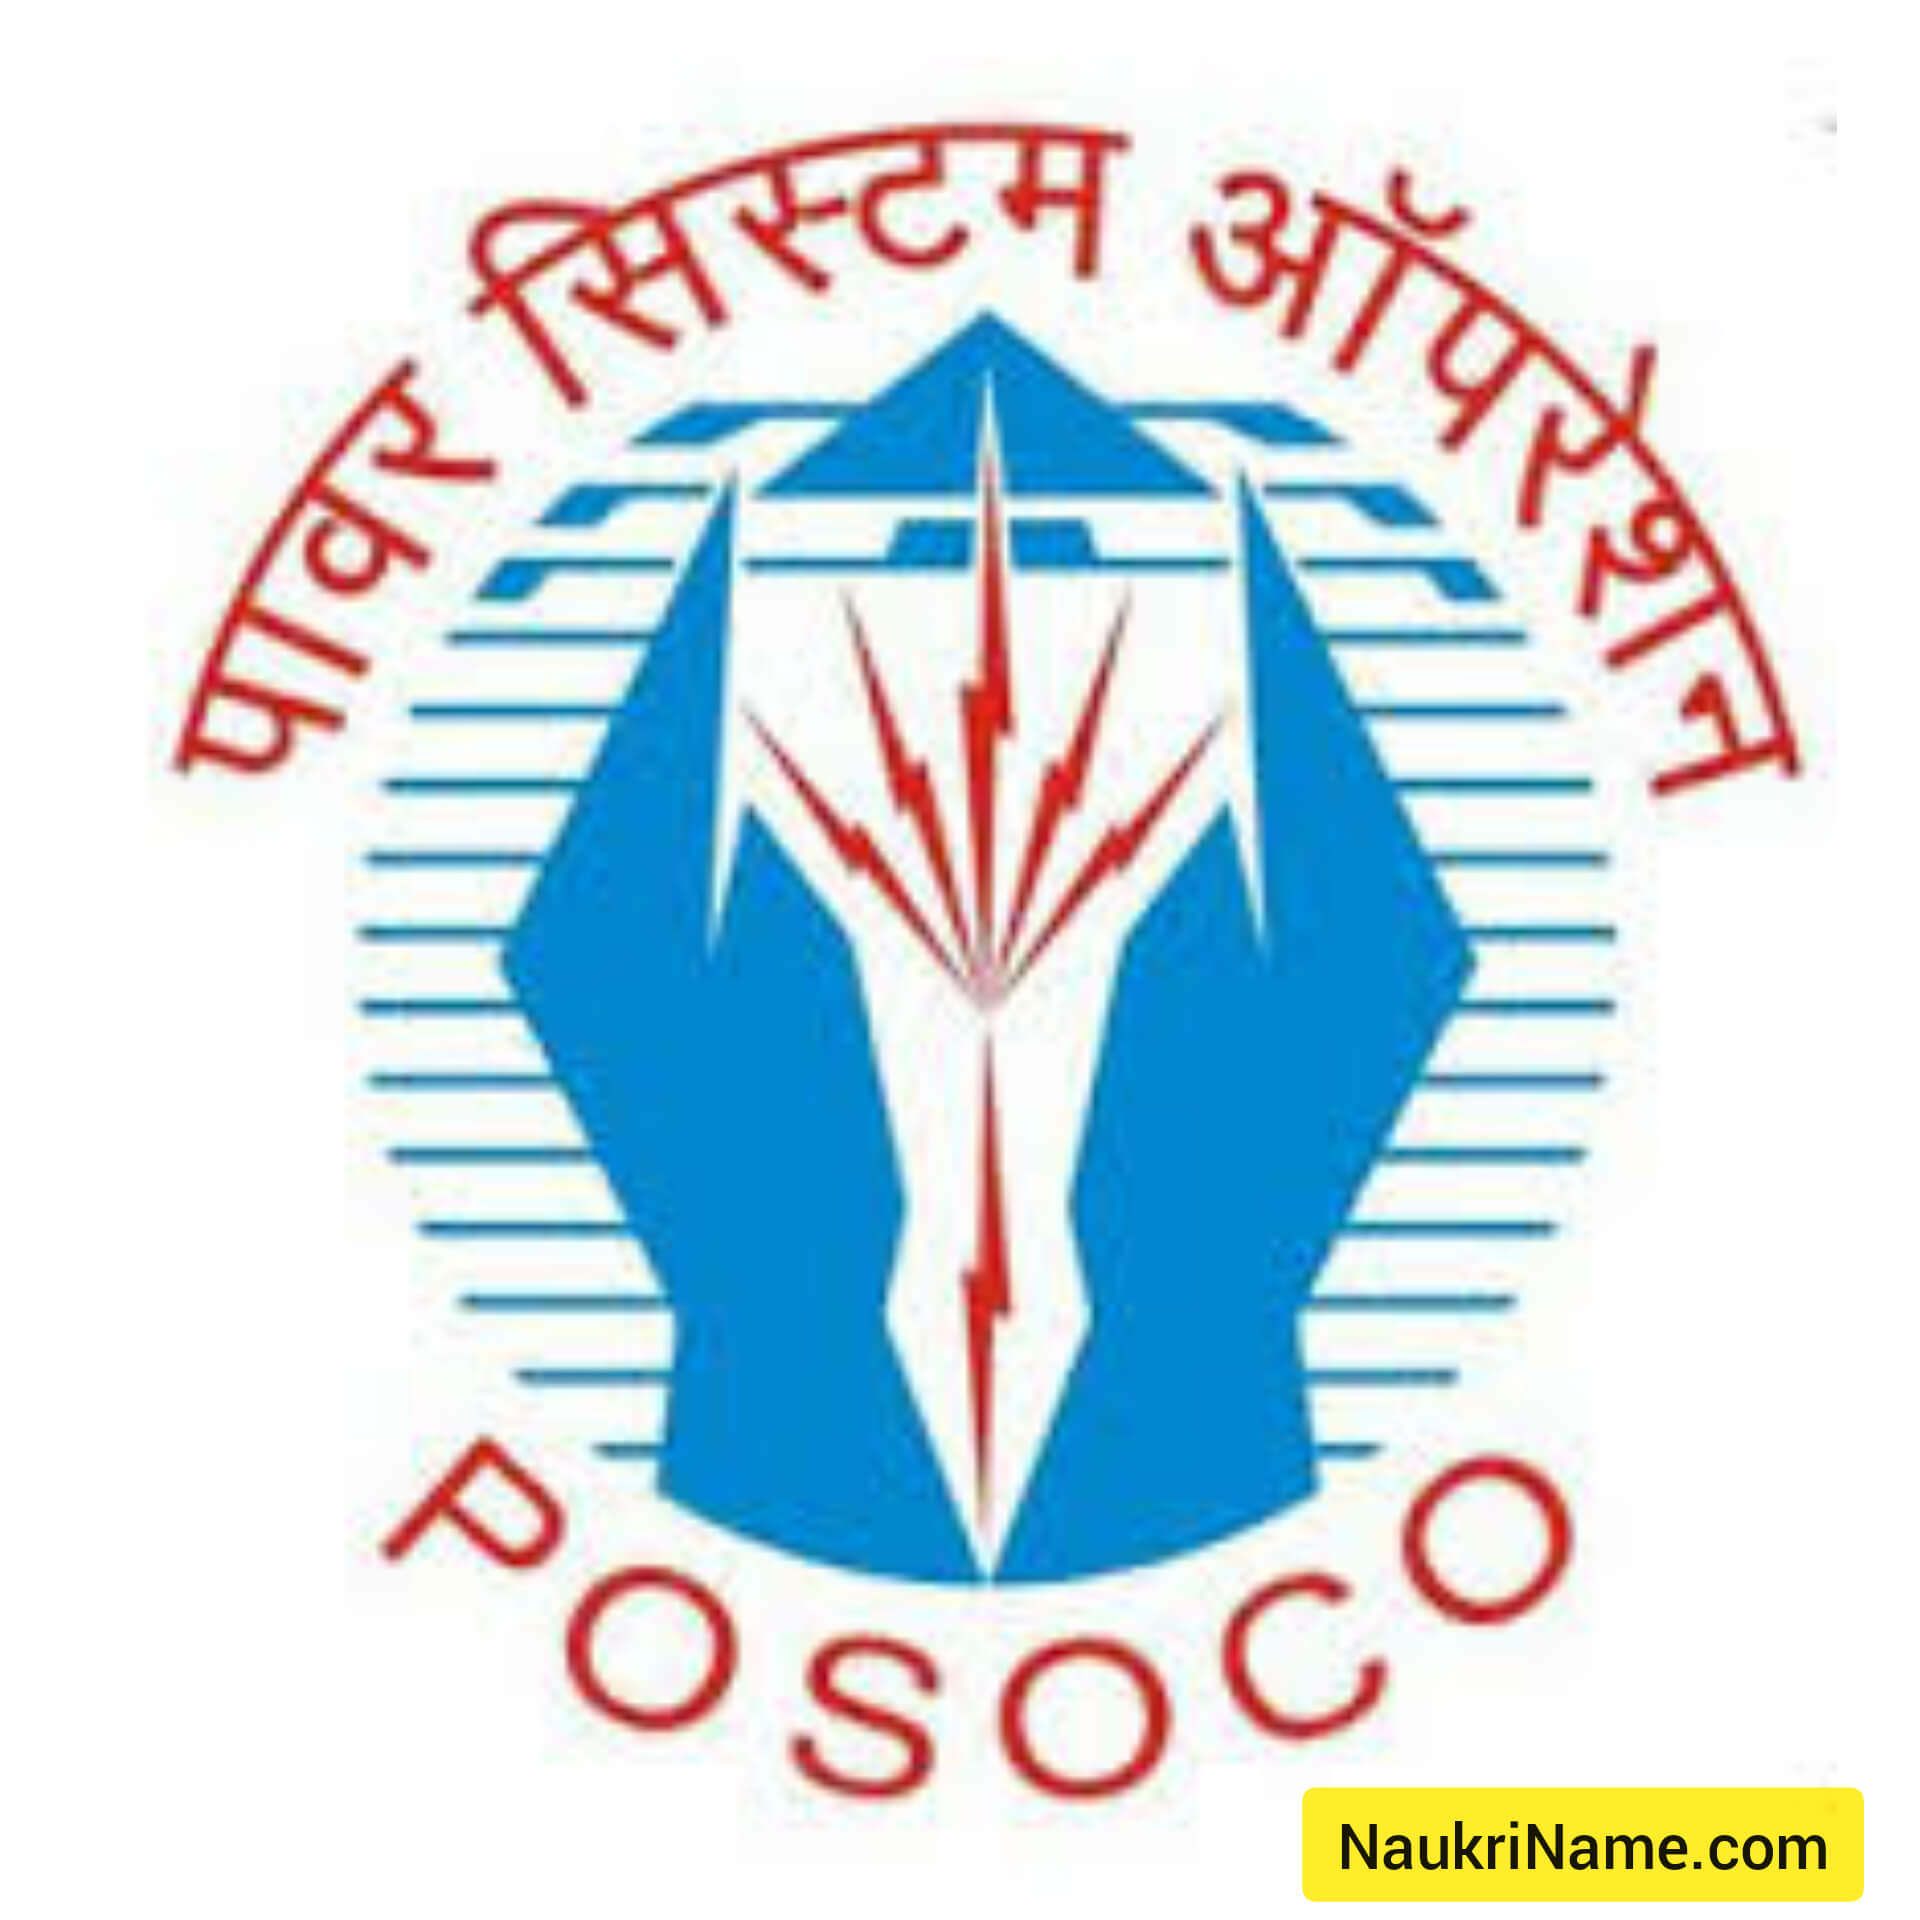 POSOCO Managers & Assistant Officer Trainees Recruitment for 2019